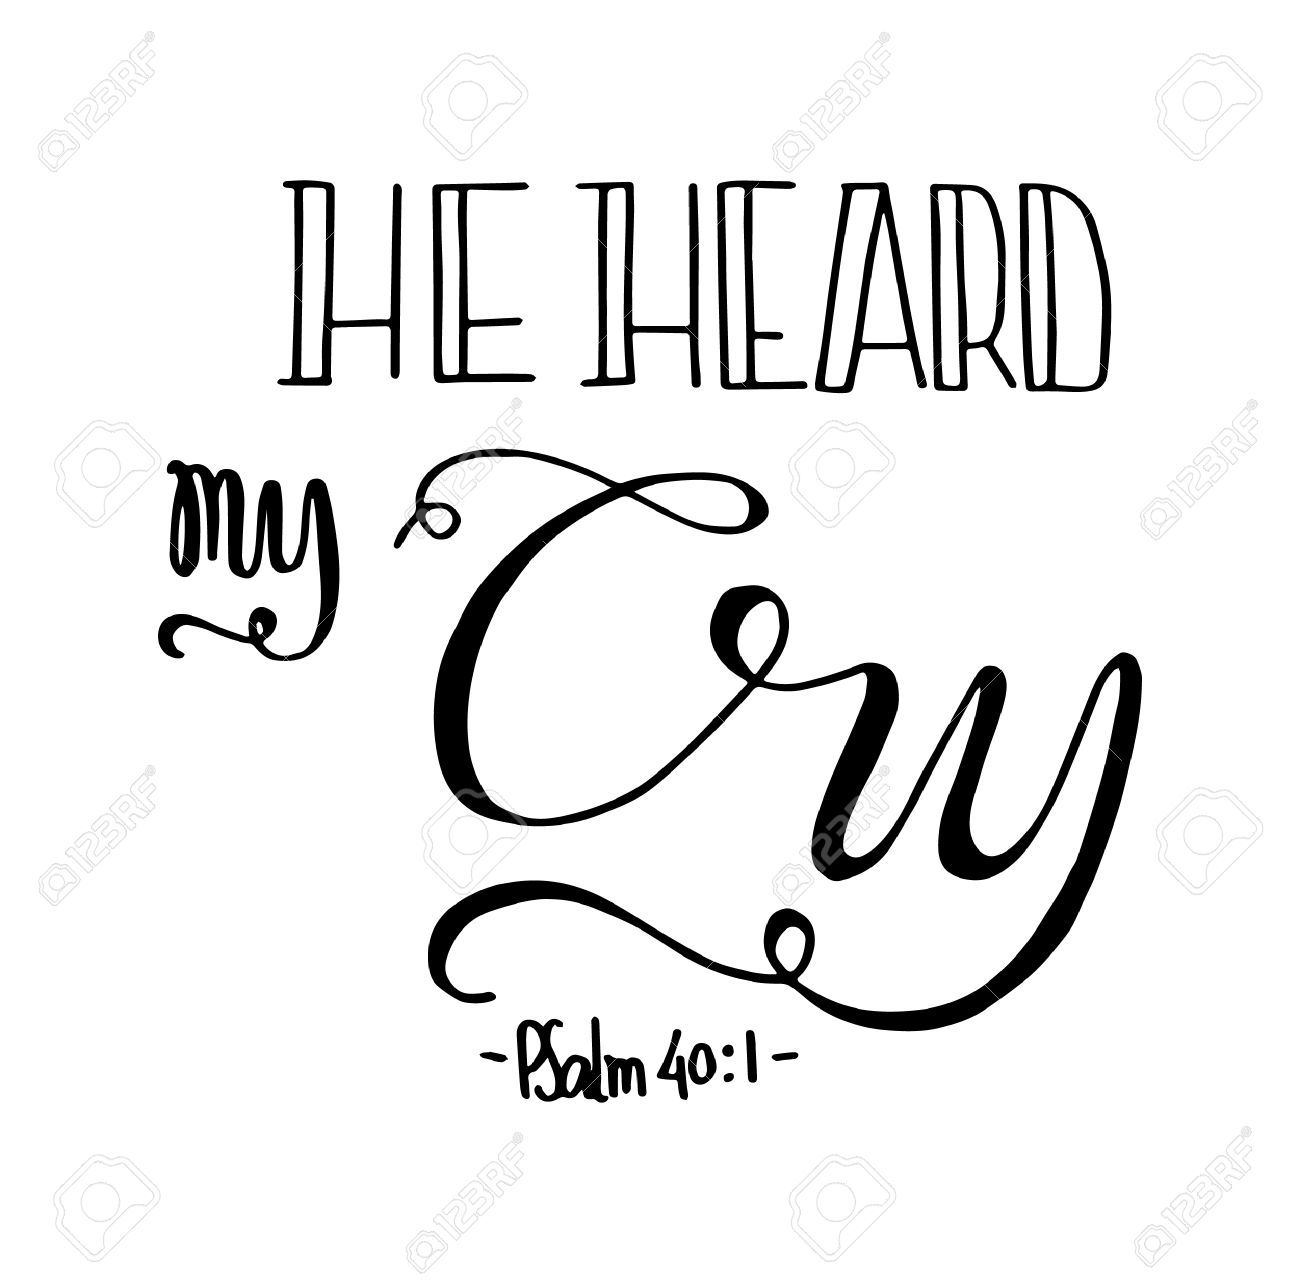 He heard my cry bible verse hand lettered quote modern bible verse hand lettered quote modern calligraphy christian buycottarizona Images